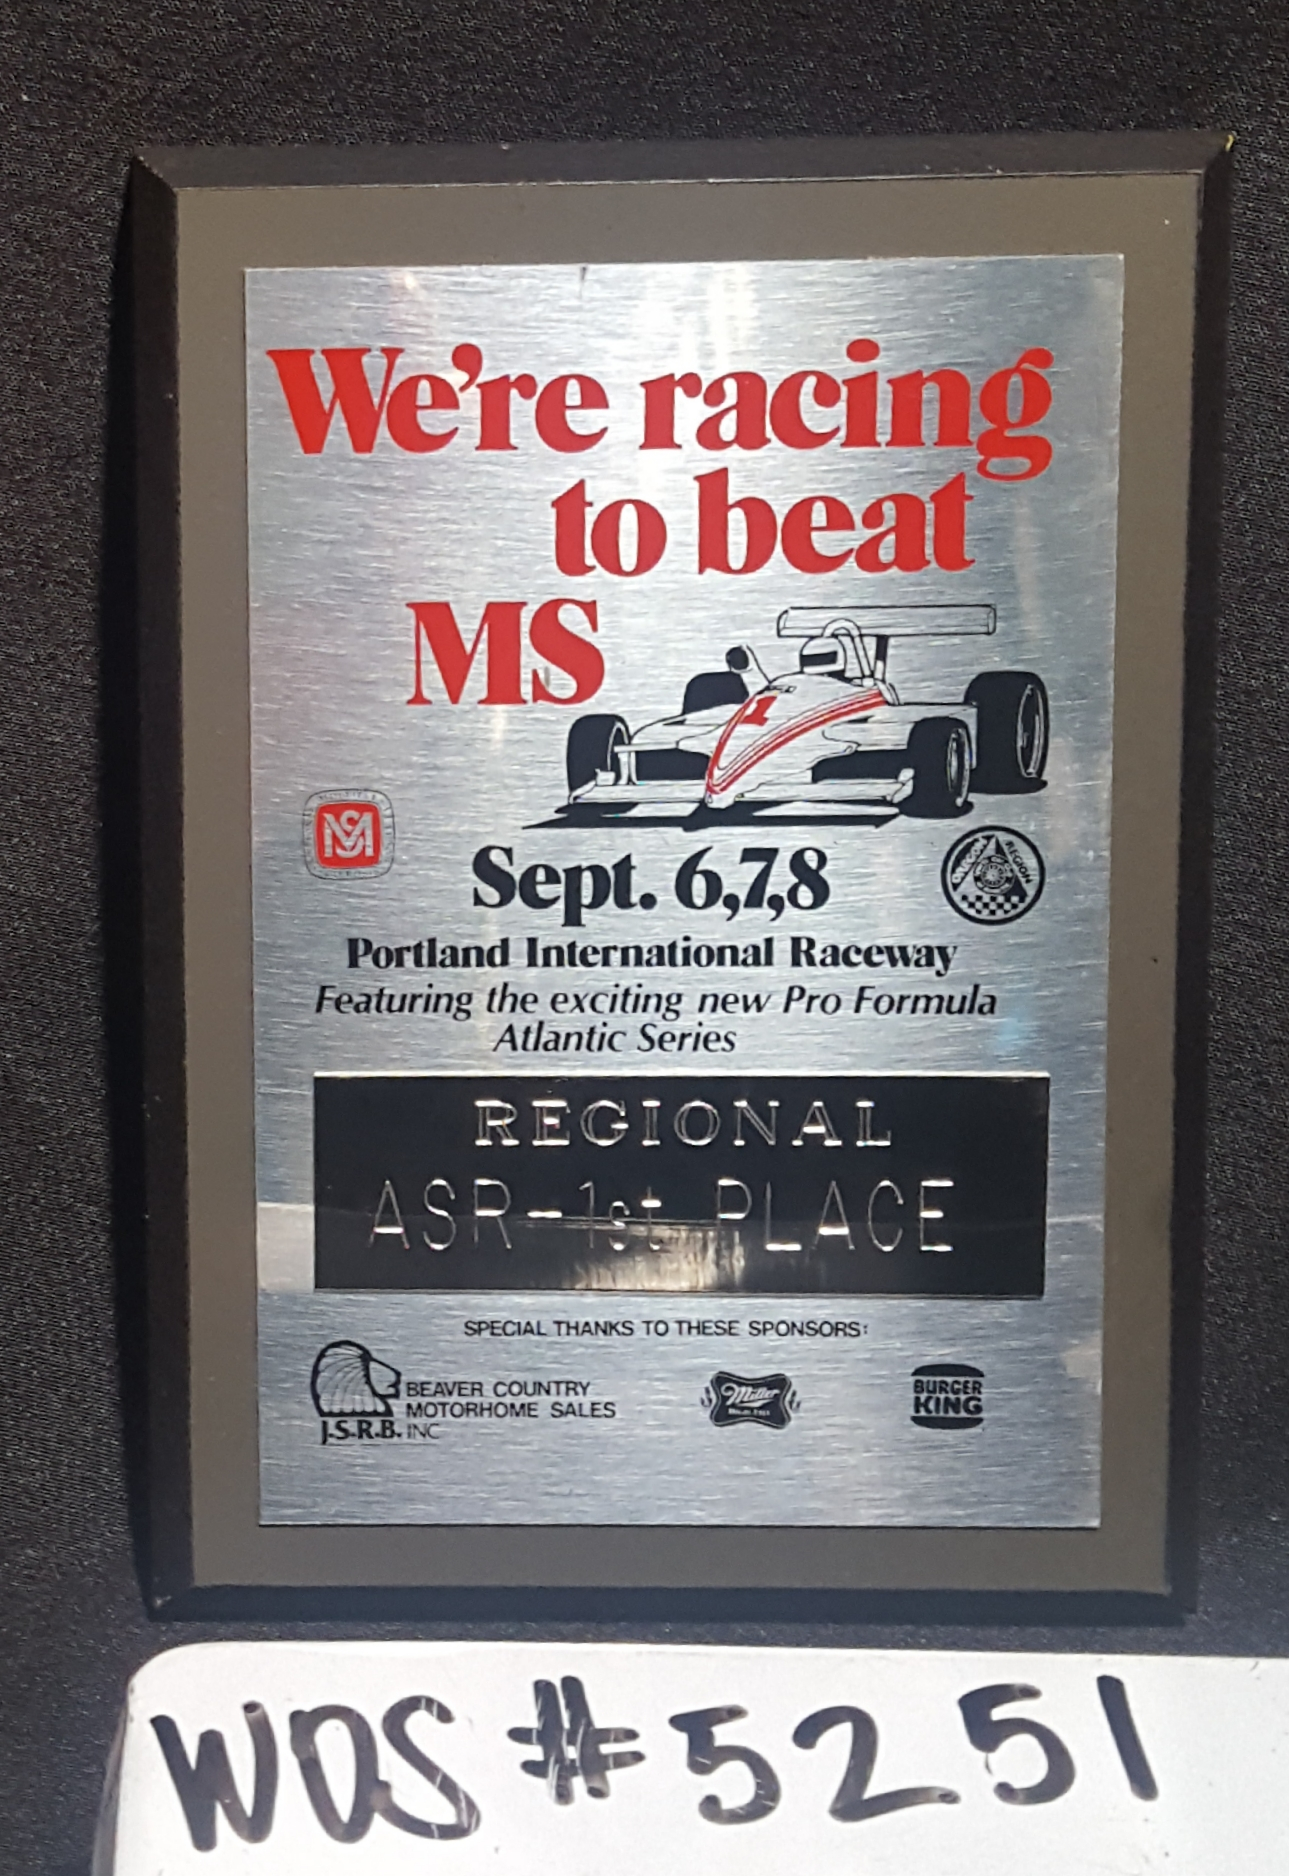 Racing to Beat MS, Regional ASR Plaque; WOS#5251